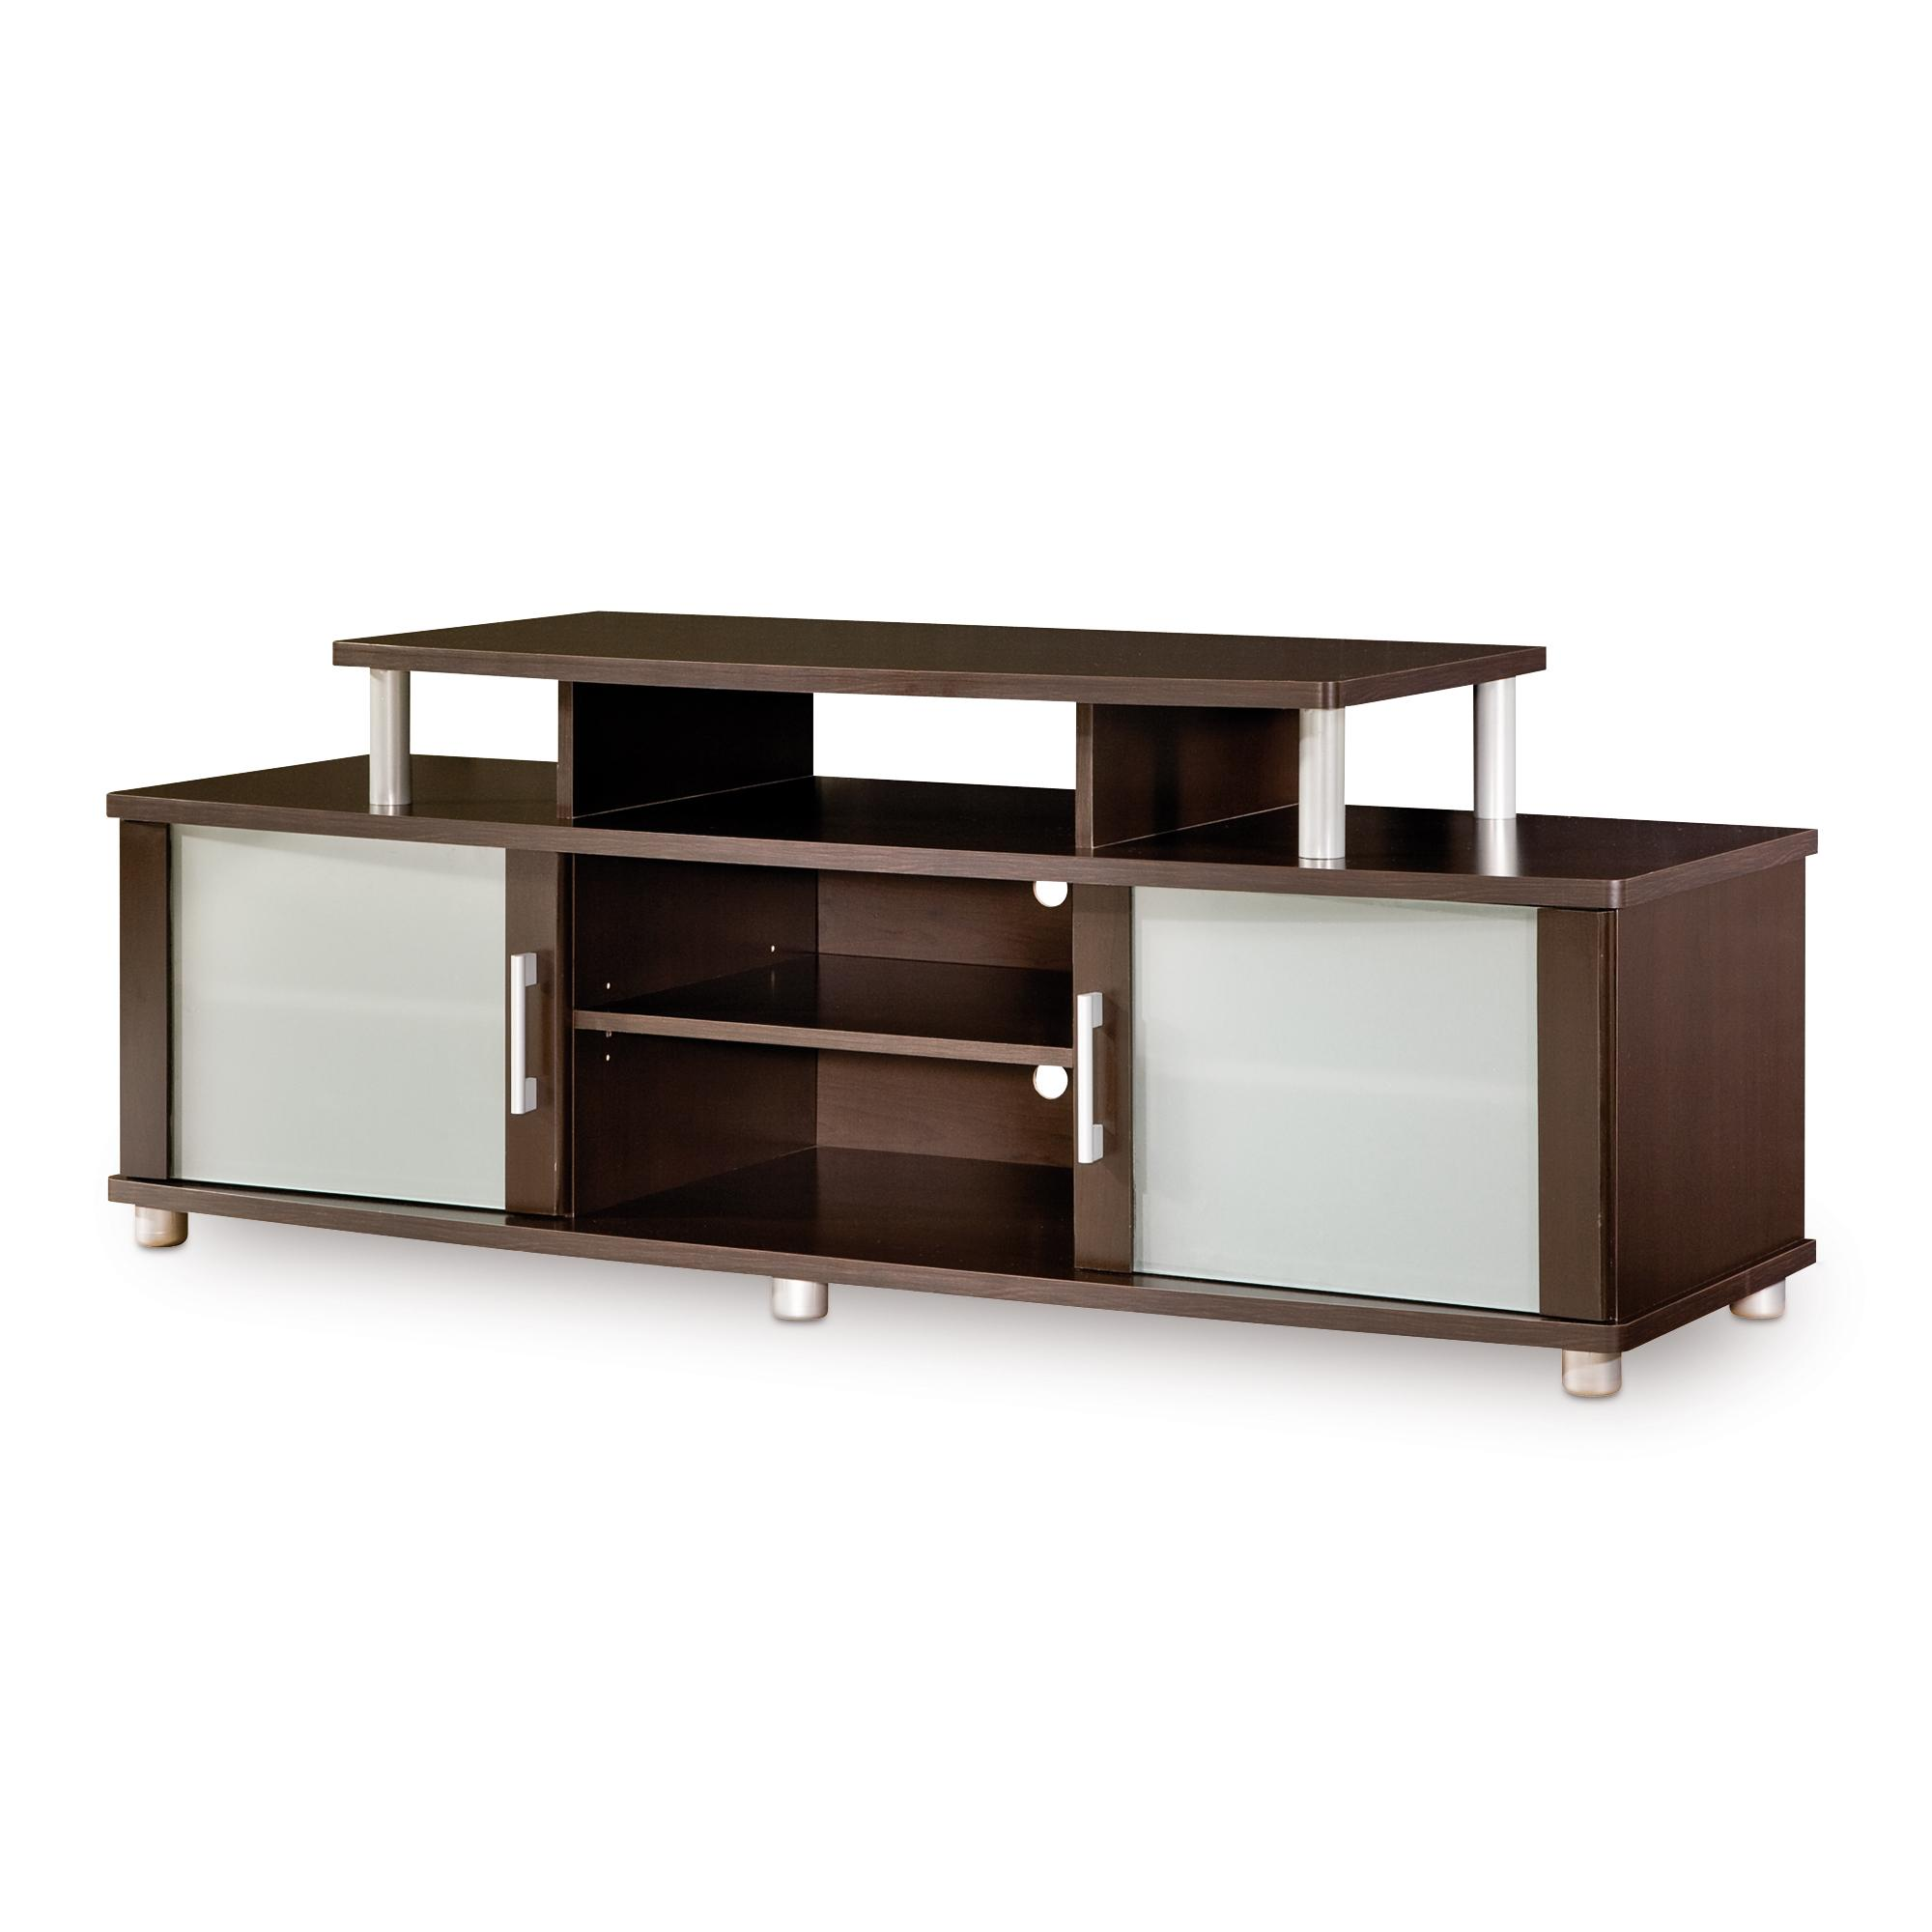 south shore city life tv stand for tvs up to  multiple  - south shore city life tv stand for tvs up to  multiple finishes walmartcom